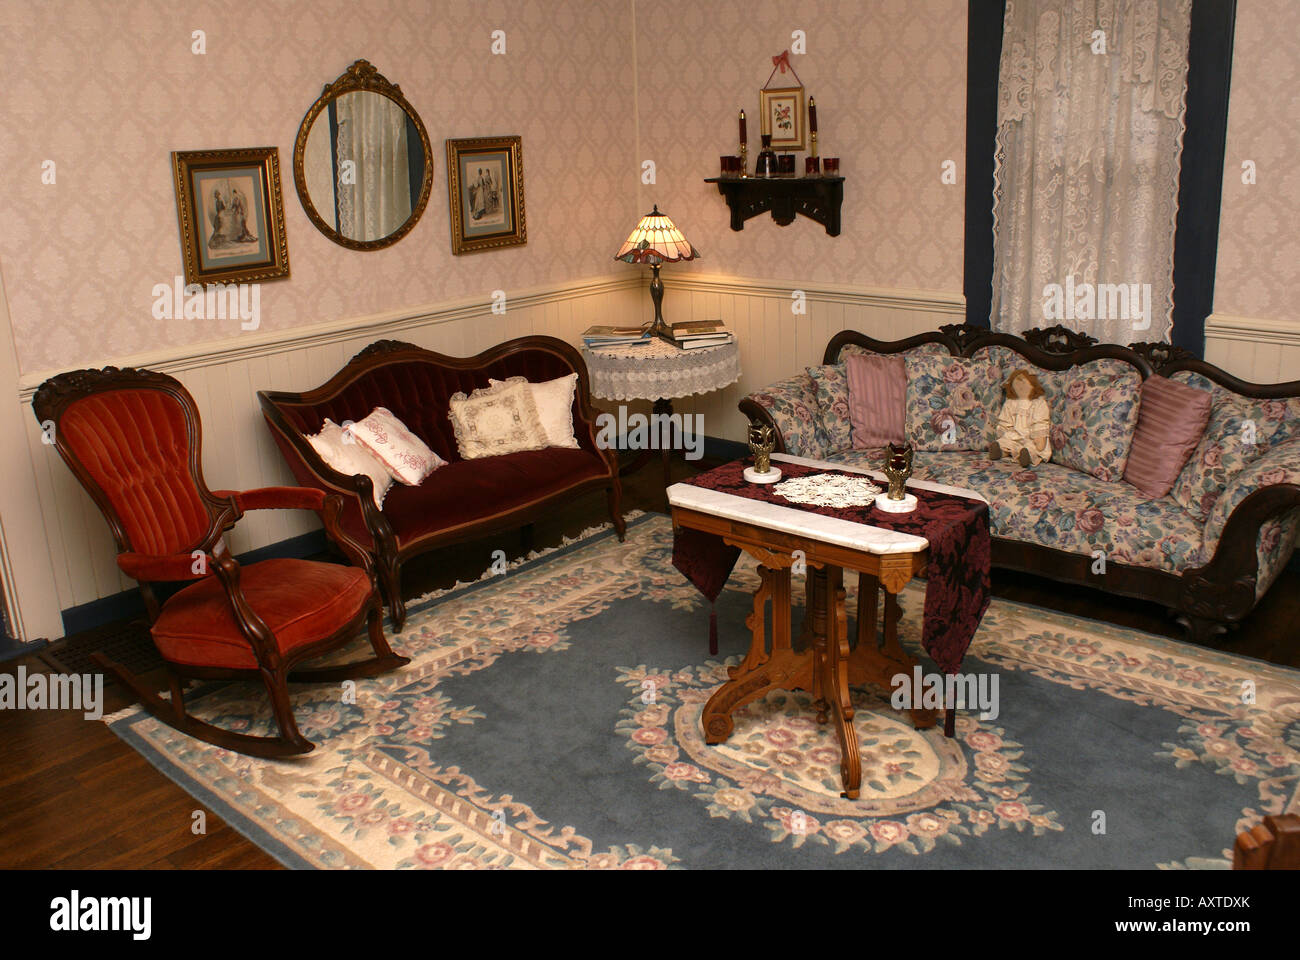 marvelous old fashioned living room | Old Fashioned Living Room Stock Photo: 16913994 - Alamy